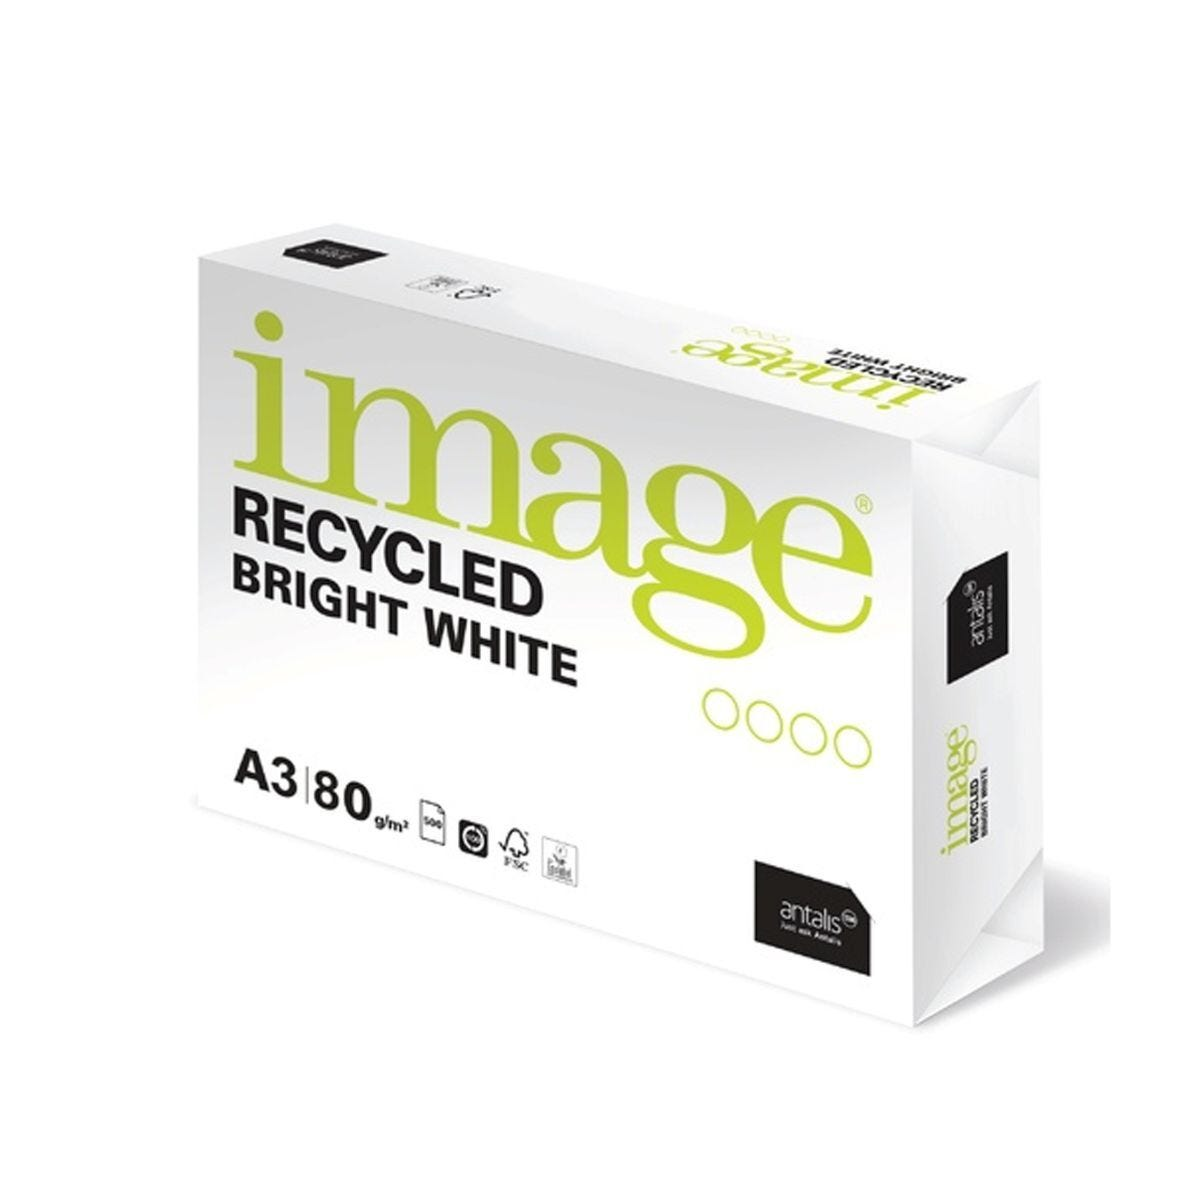 Image Recycled Bright White Copier Paper A3 Ream 80gsm